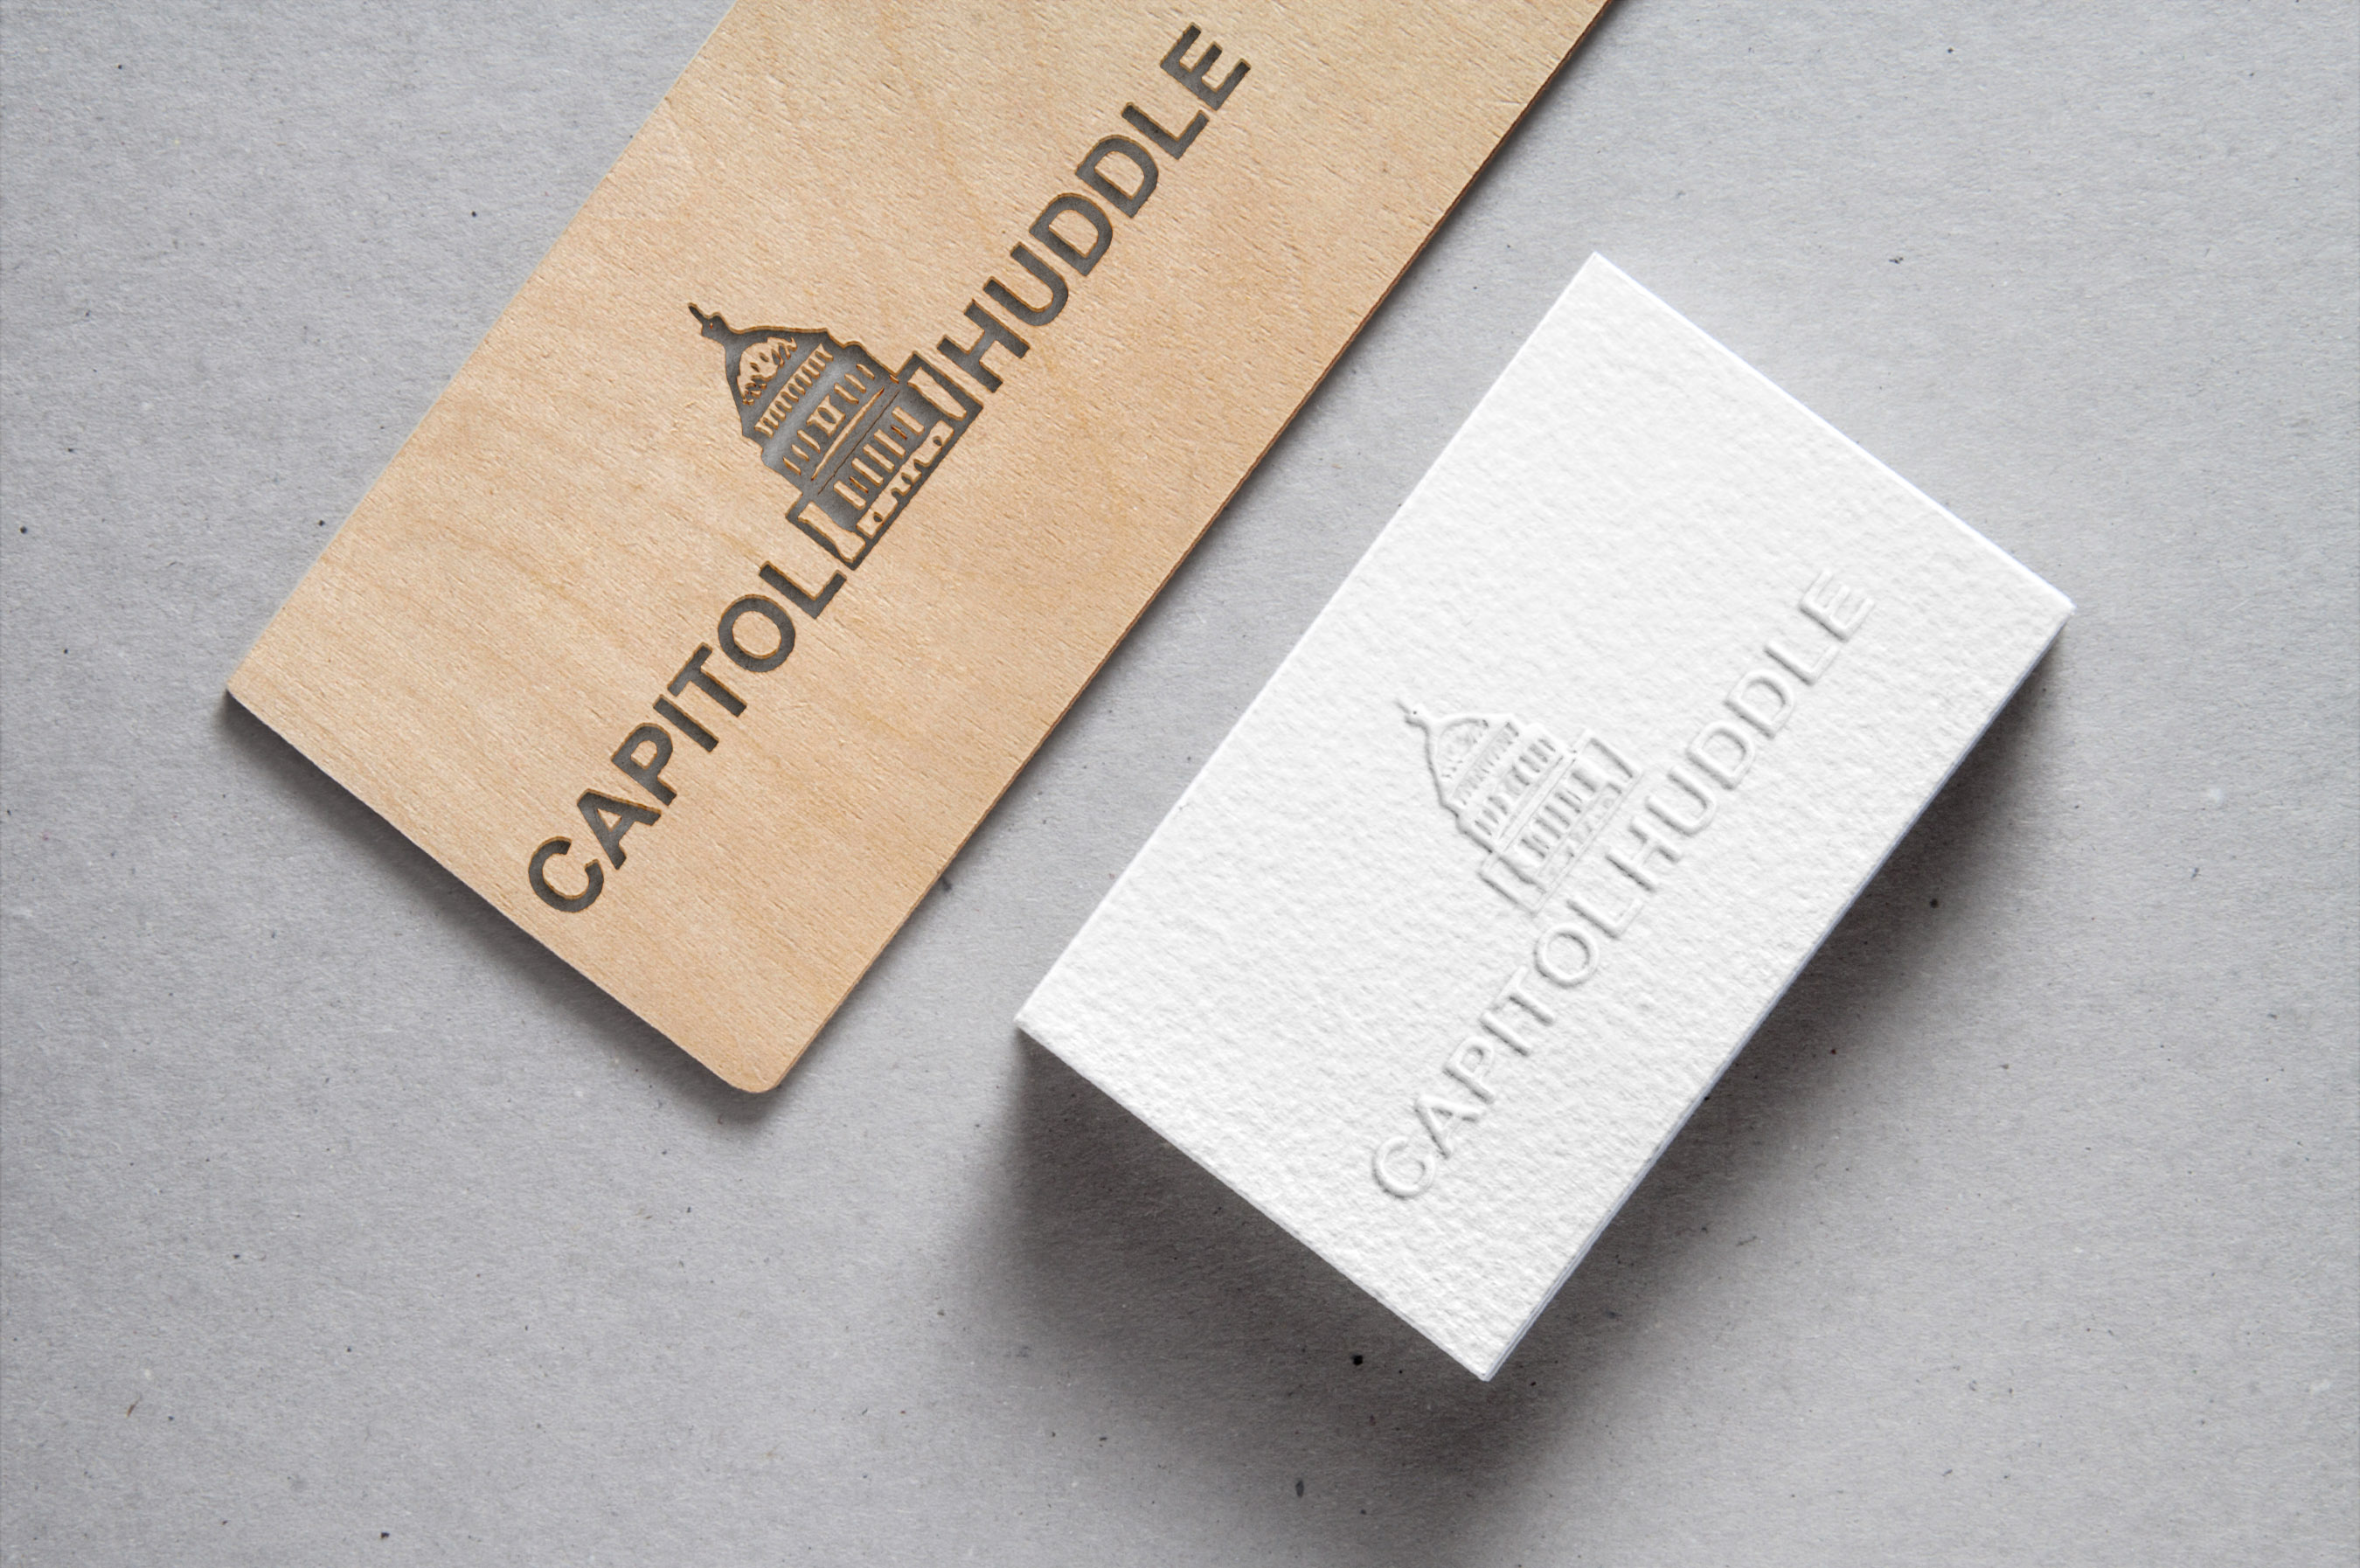 Political business cards gallery free business cards eli dickman designer logo and business card design for political advocacy group capitol huddle magicingreecefo gallery magicingreecefo Images